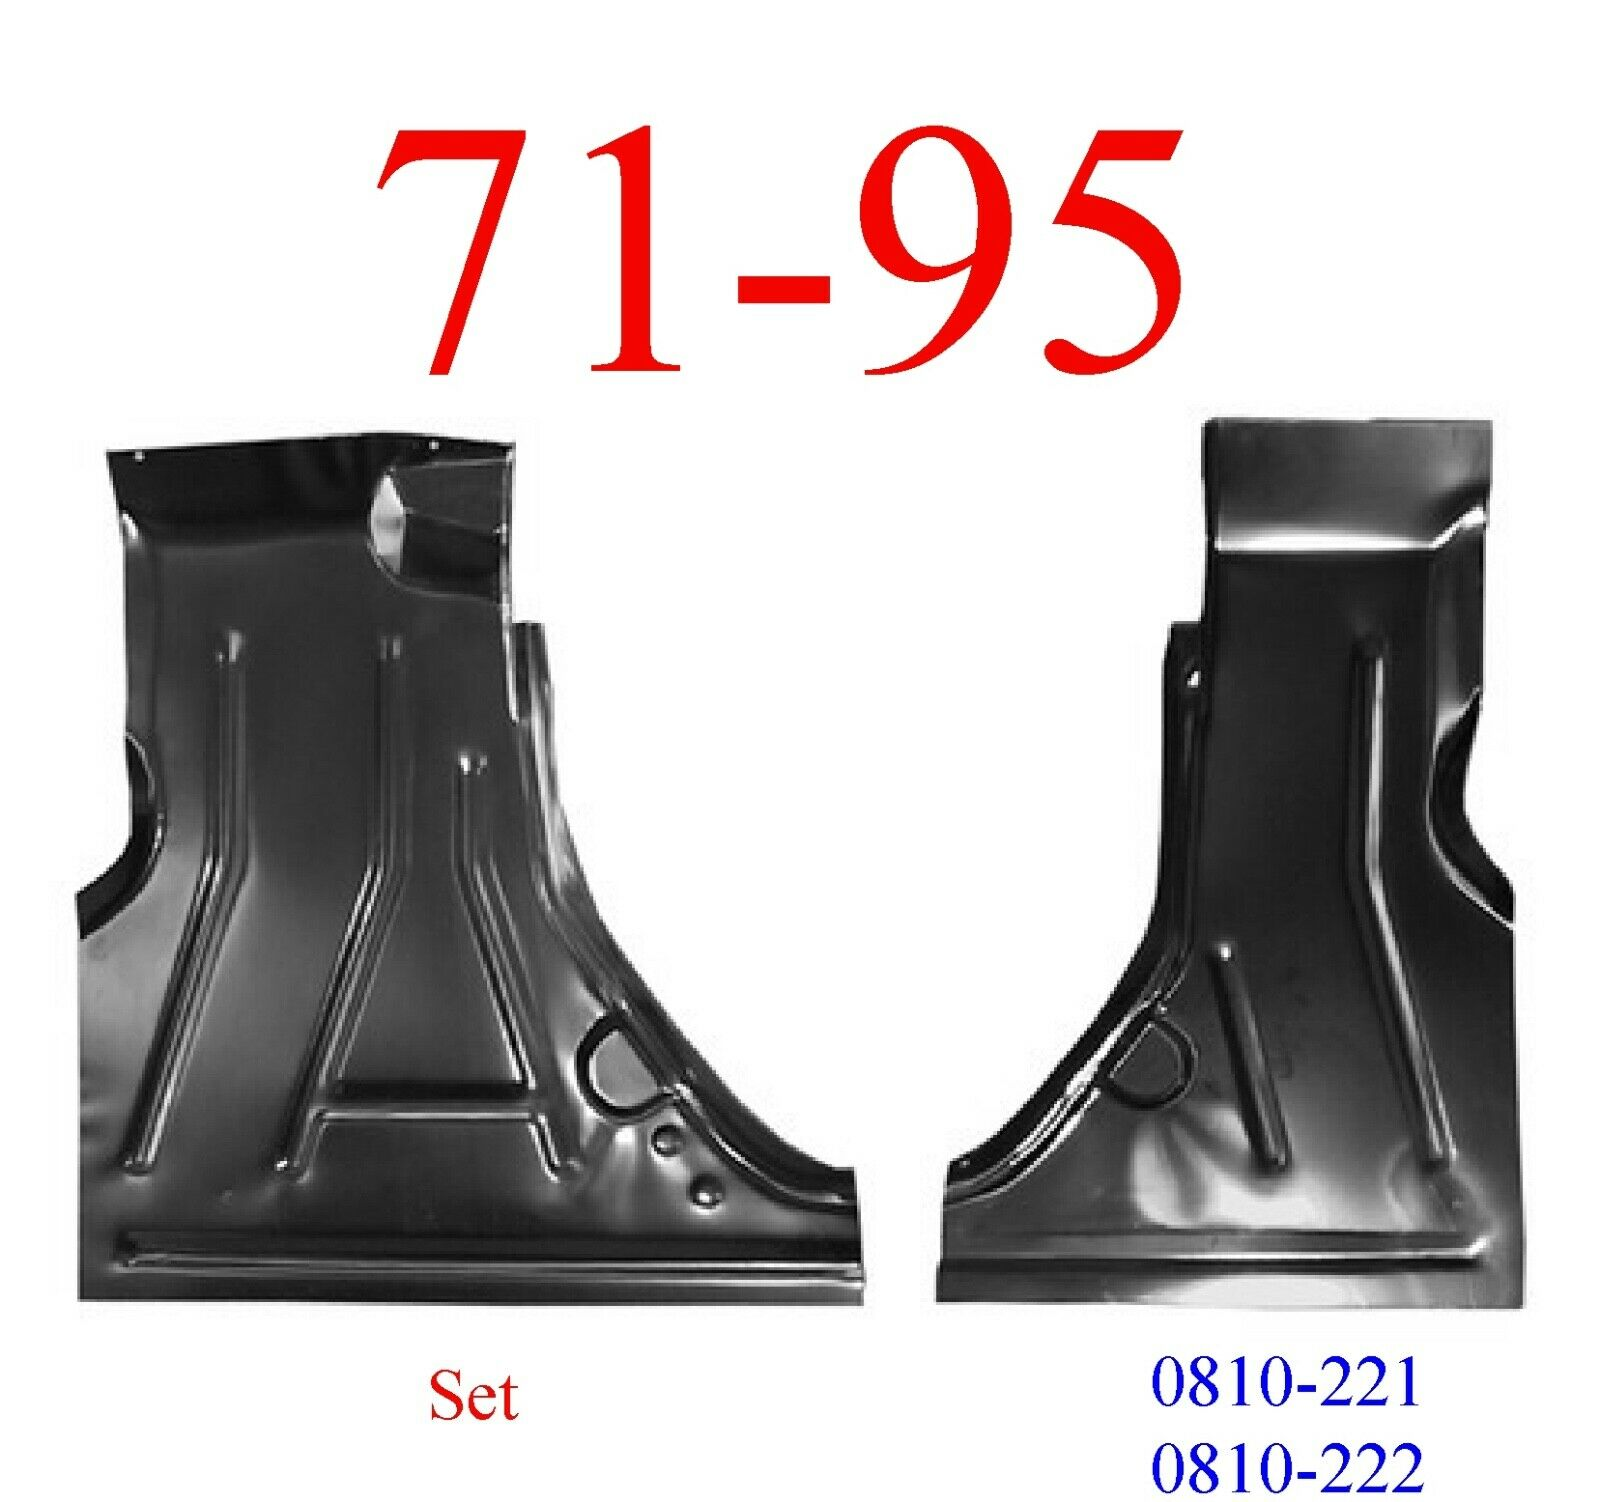 71-95 Chevy Van Floor Pan Set